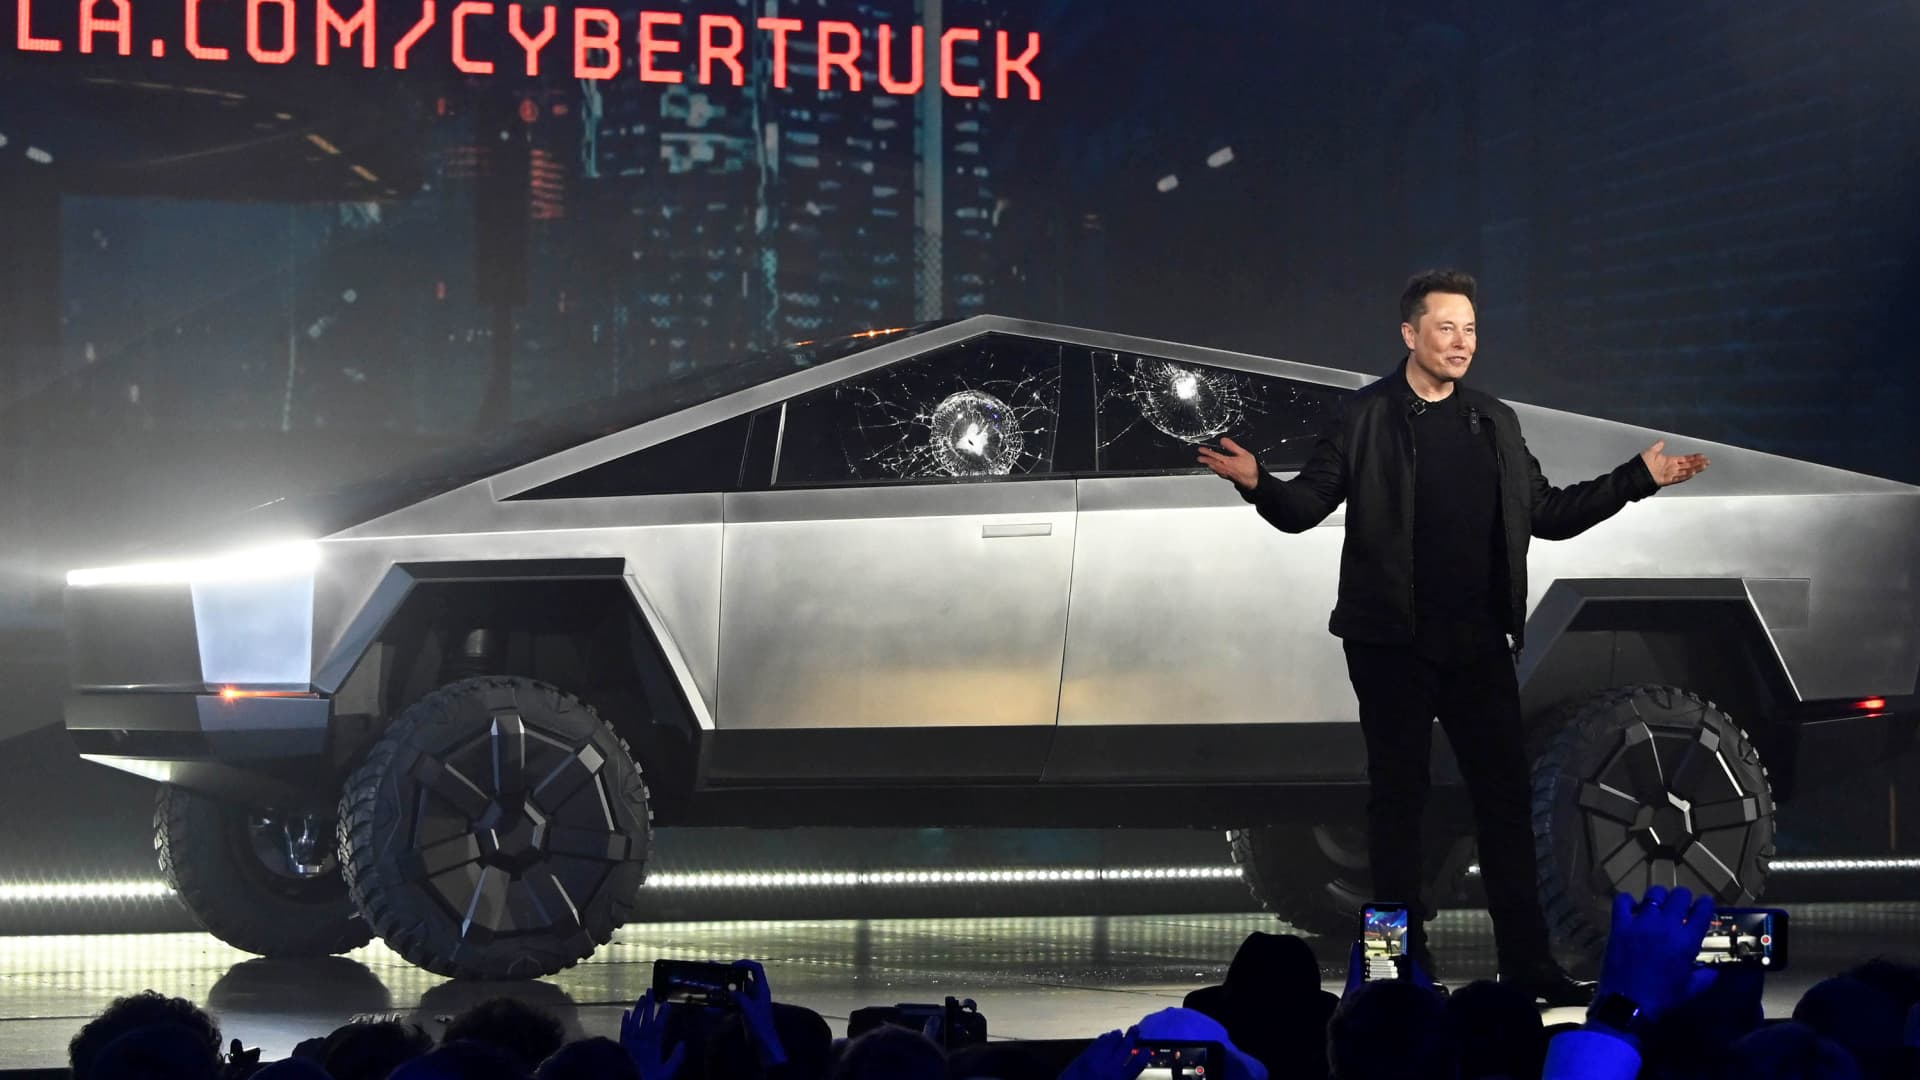 Tesla CEO Elon Musk unveils the Cybertruck at the TeslaDesign Studio in Hawthorne, Calif. The cracked window glass occurred during a demonstration on the strength of the glass.